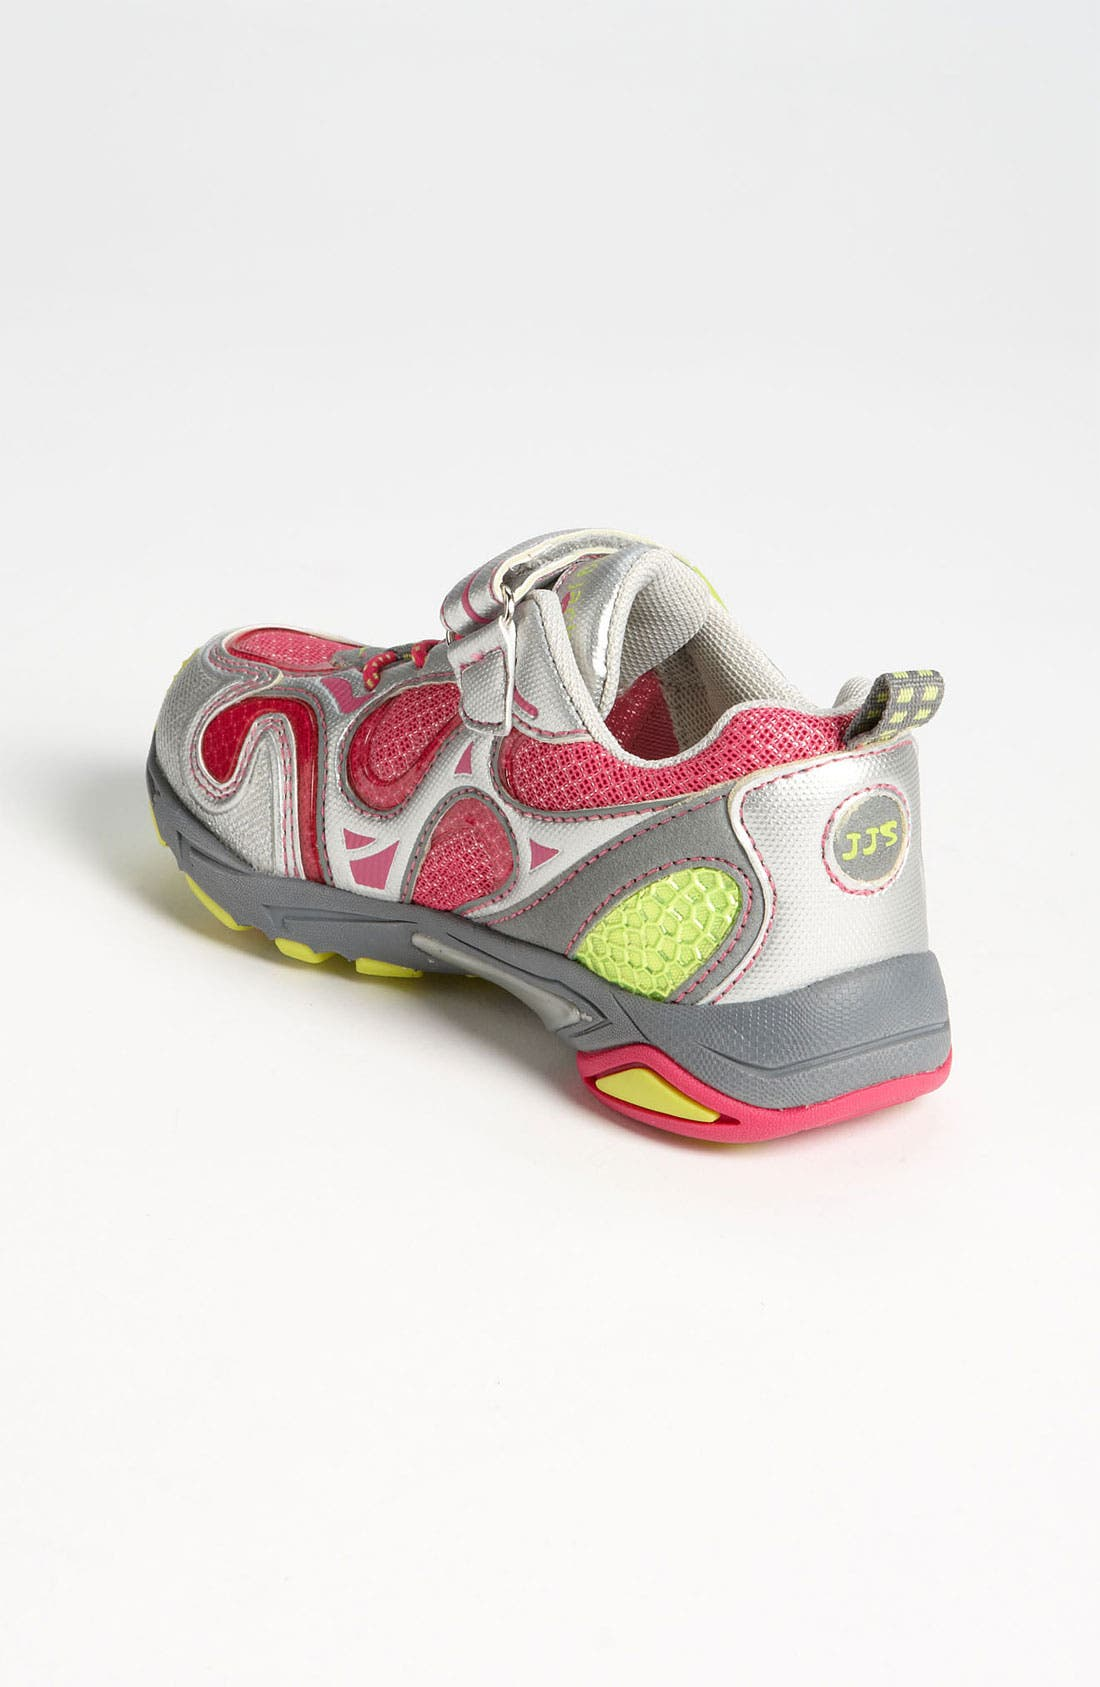 Alternate Image 2  - Jumping Jacks 'Turtle Tuff' Sneaker (Toddler, Little Kid & Big Kid)